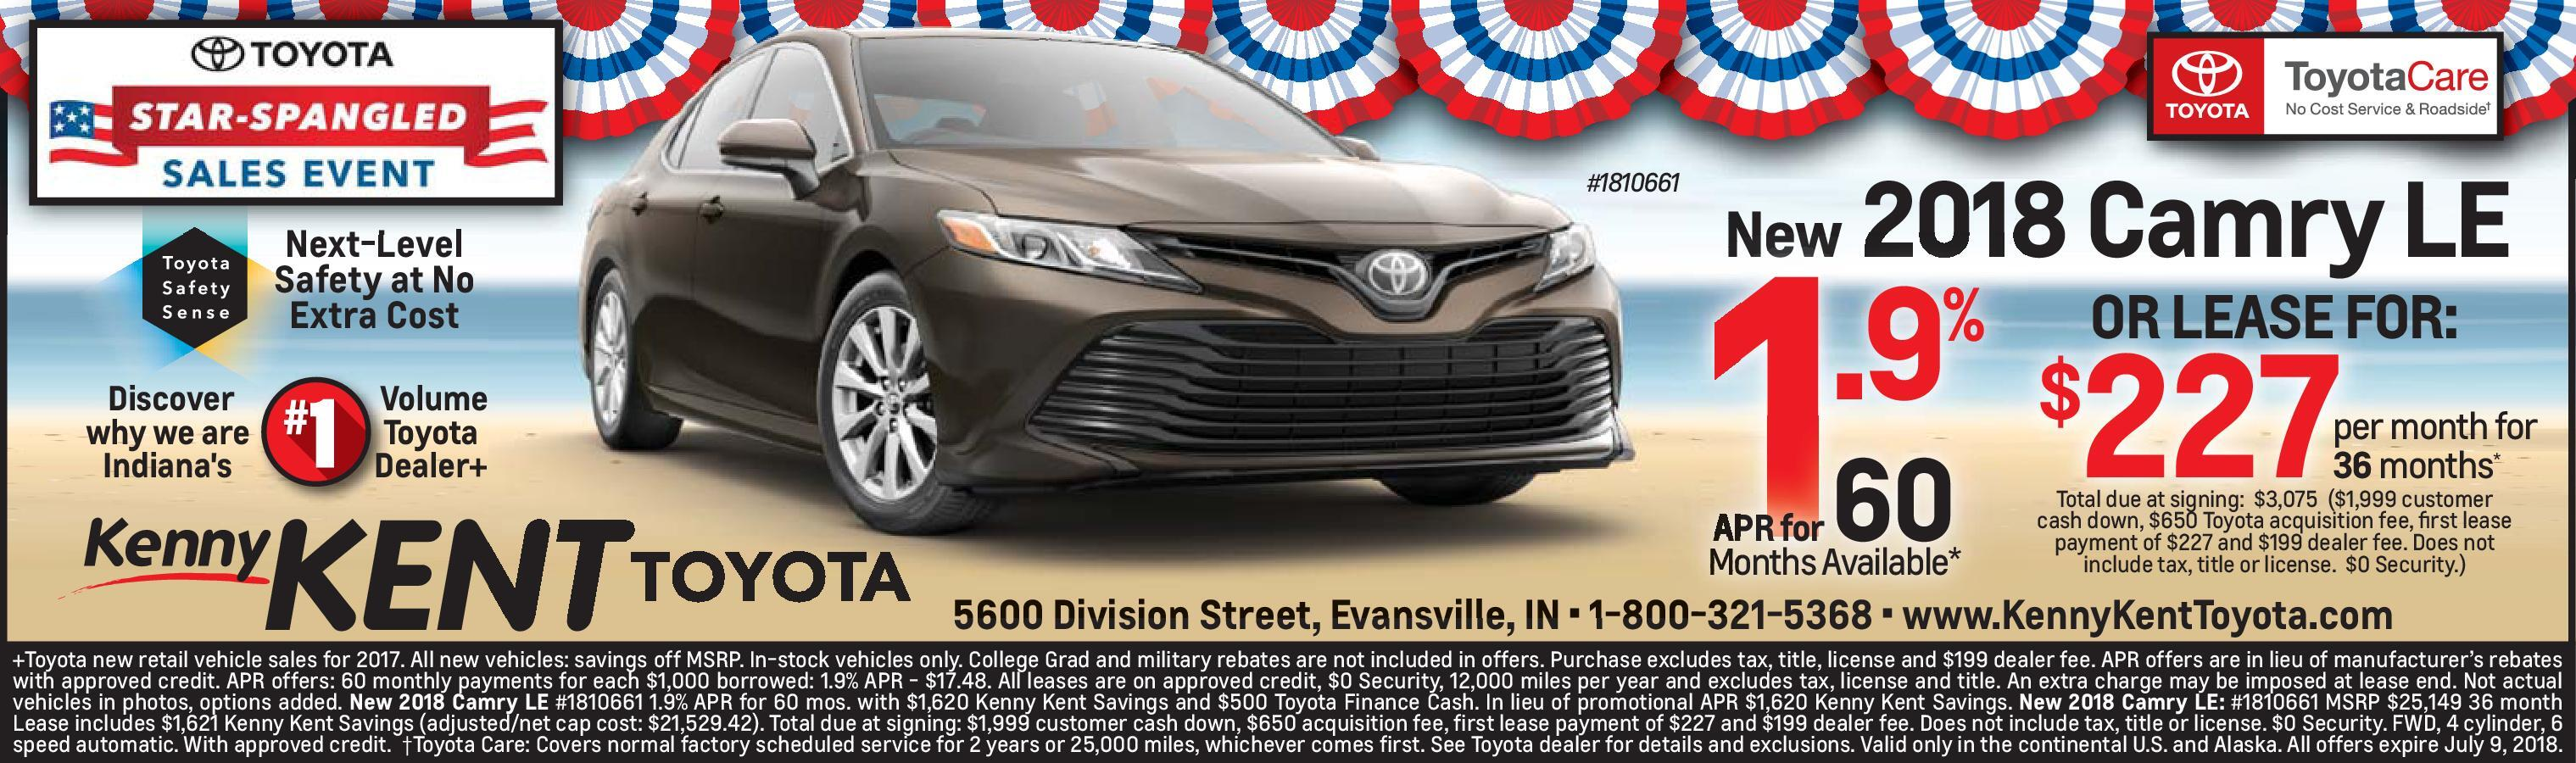 2018 Camry LE Kenny KENT TOYOTA